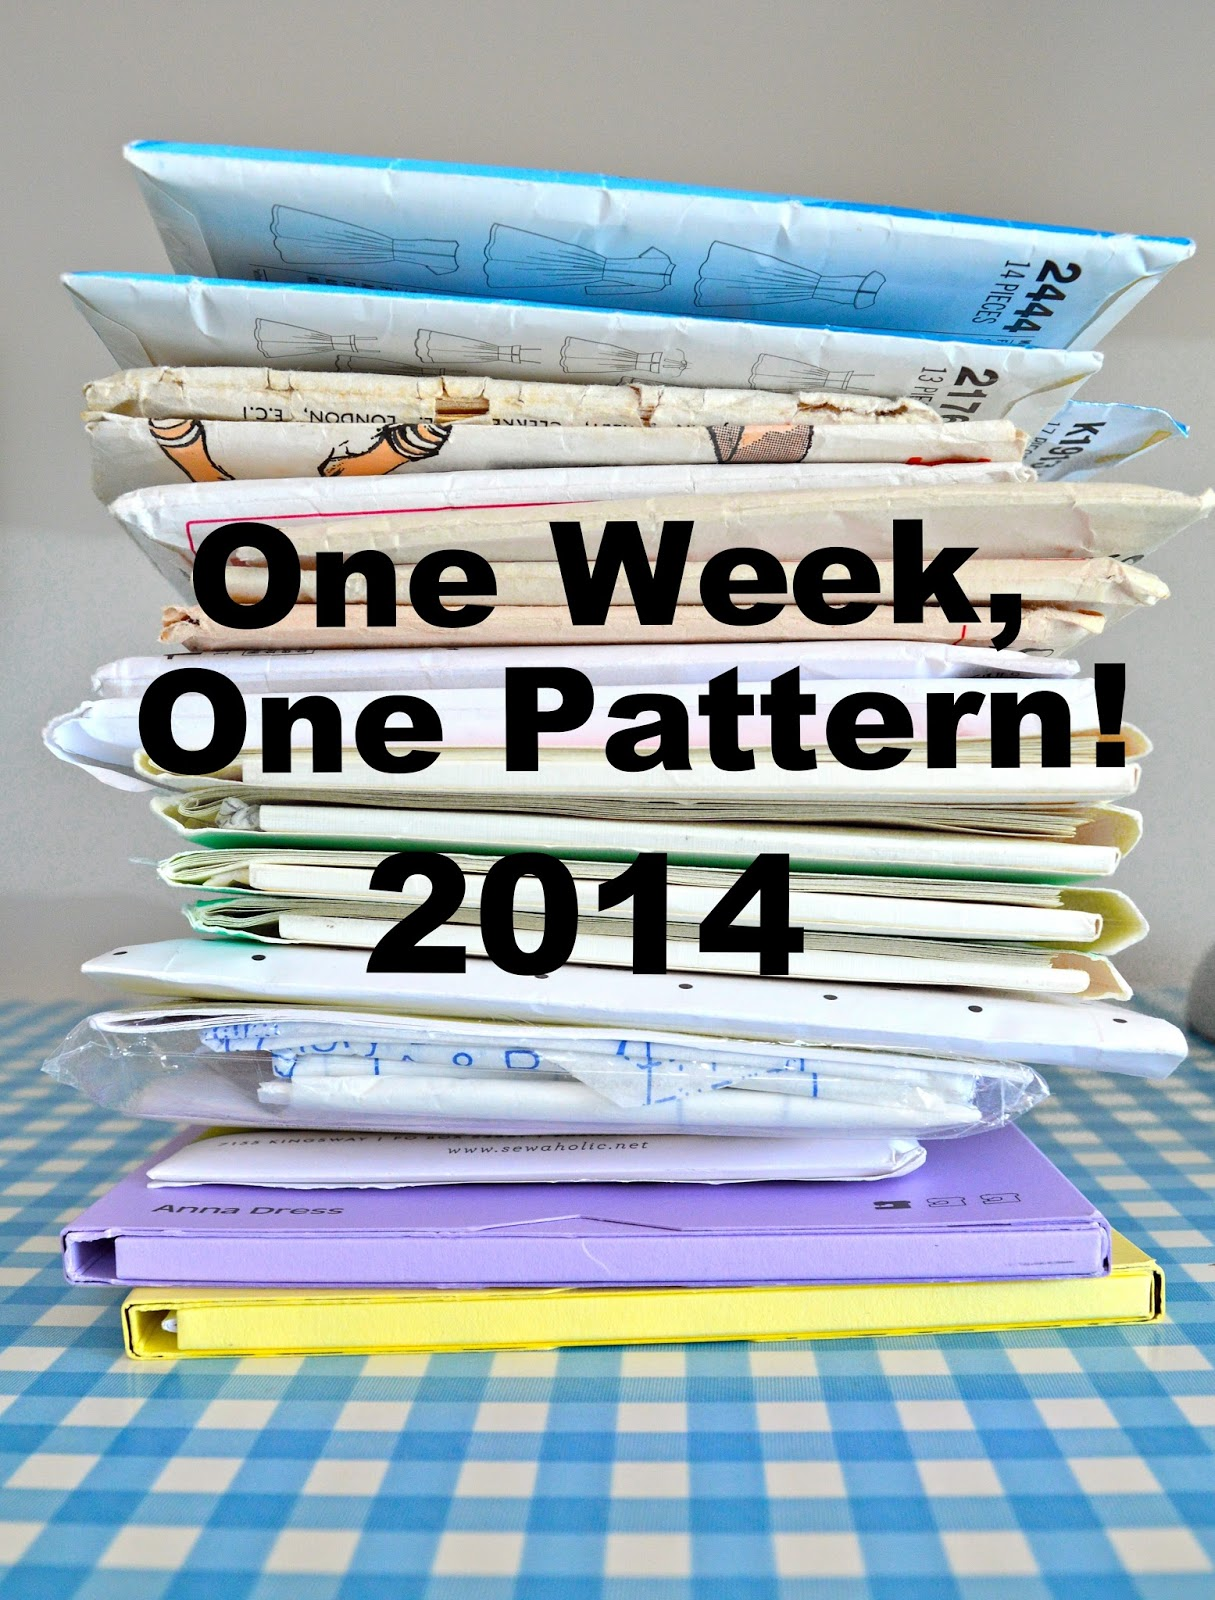 One Week, One Pattern 2014